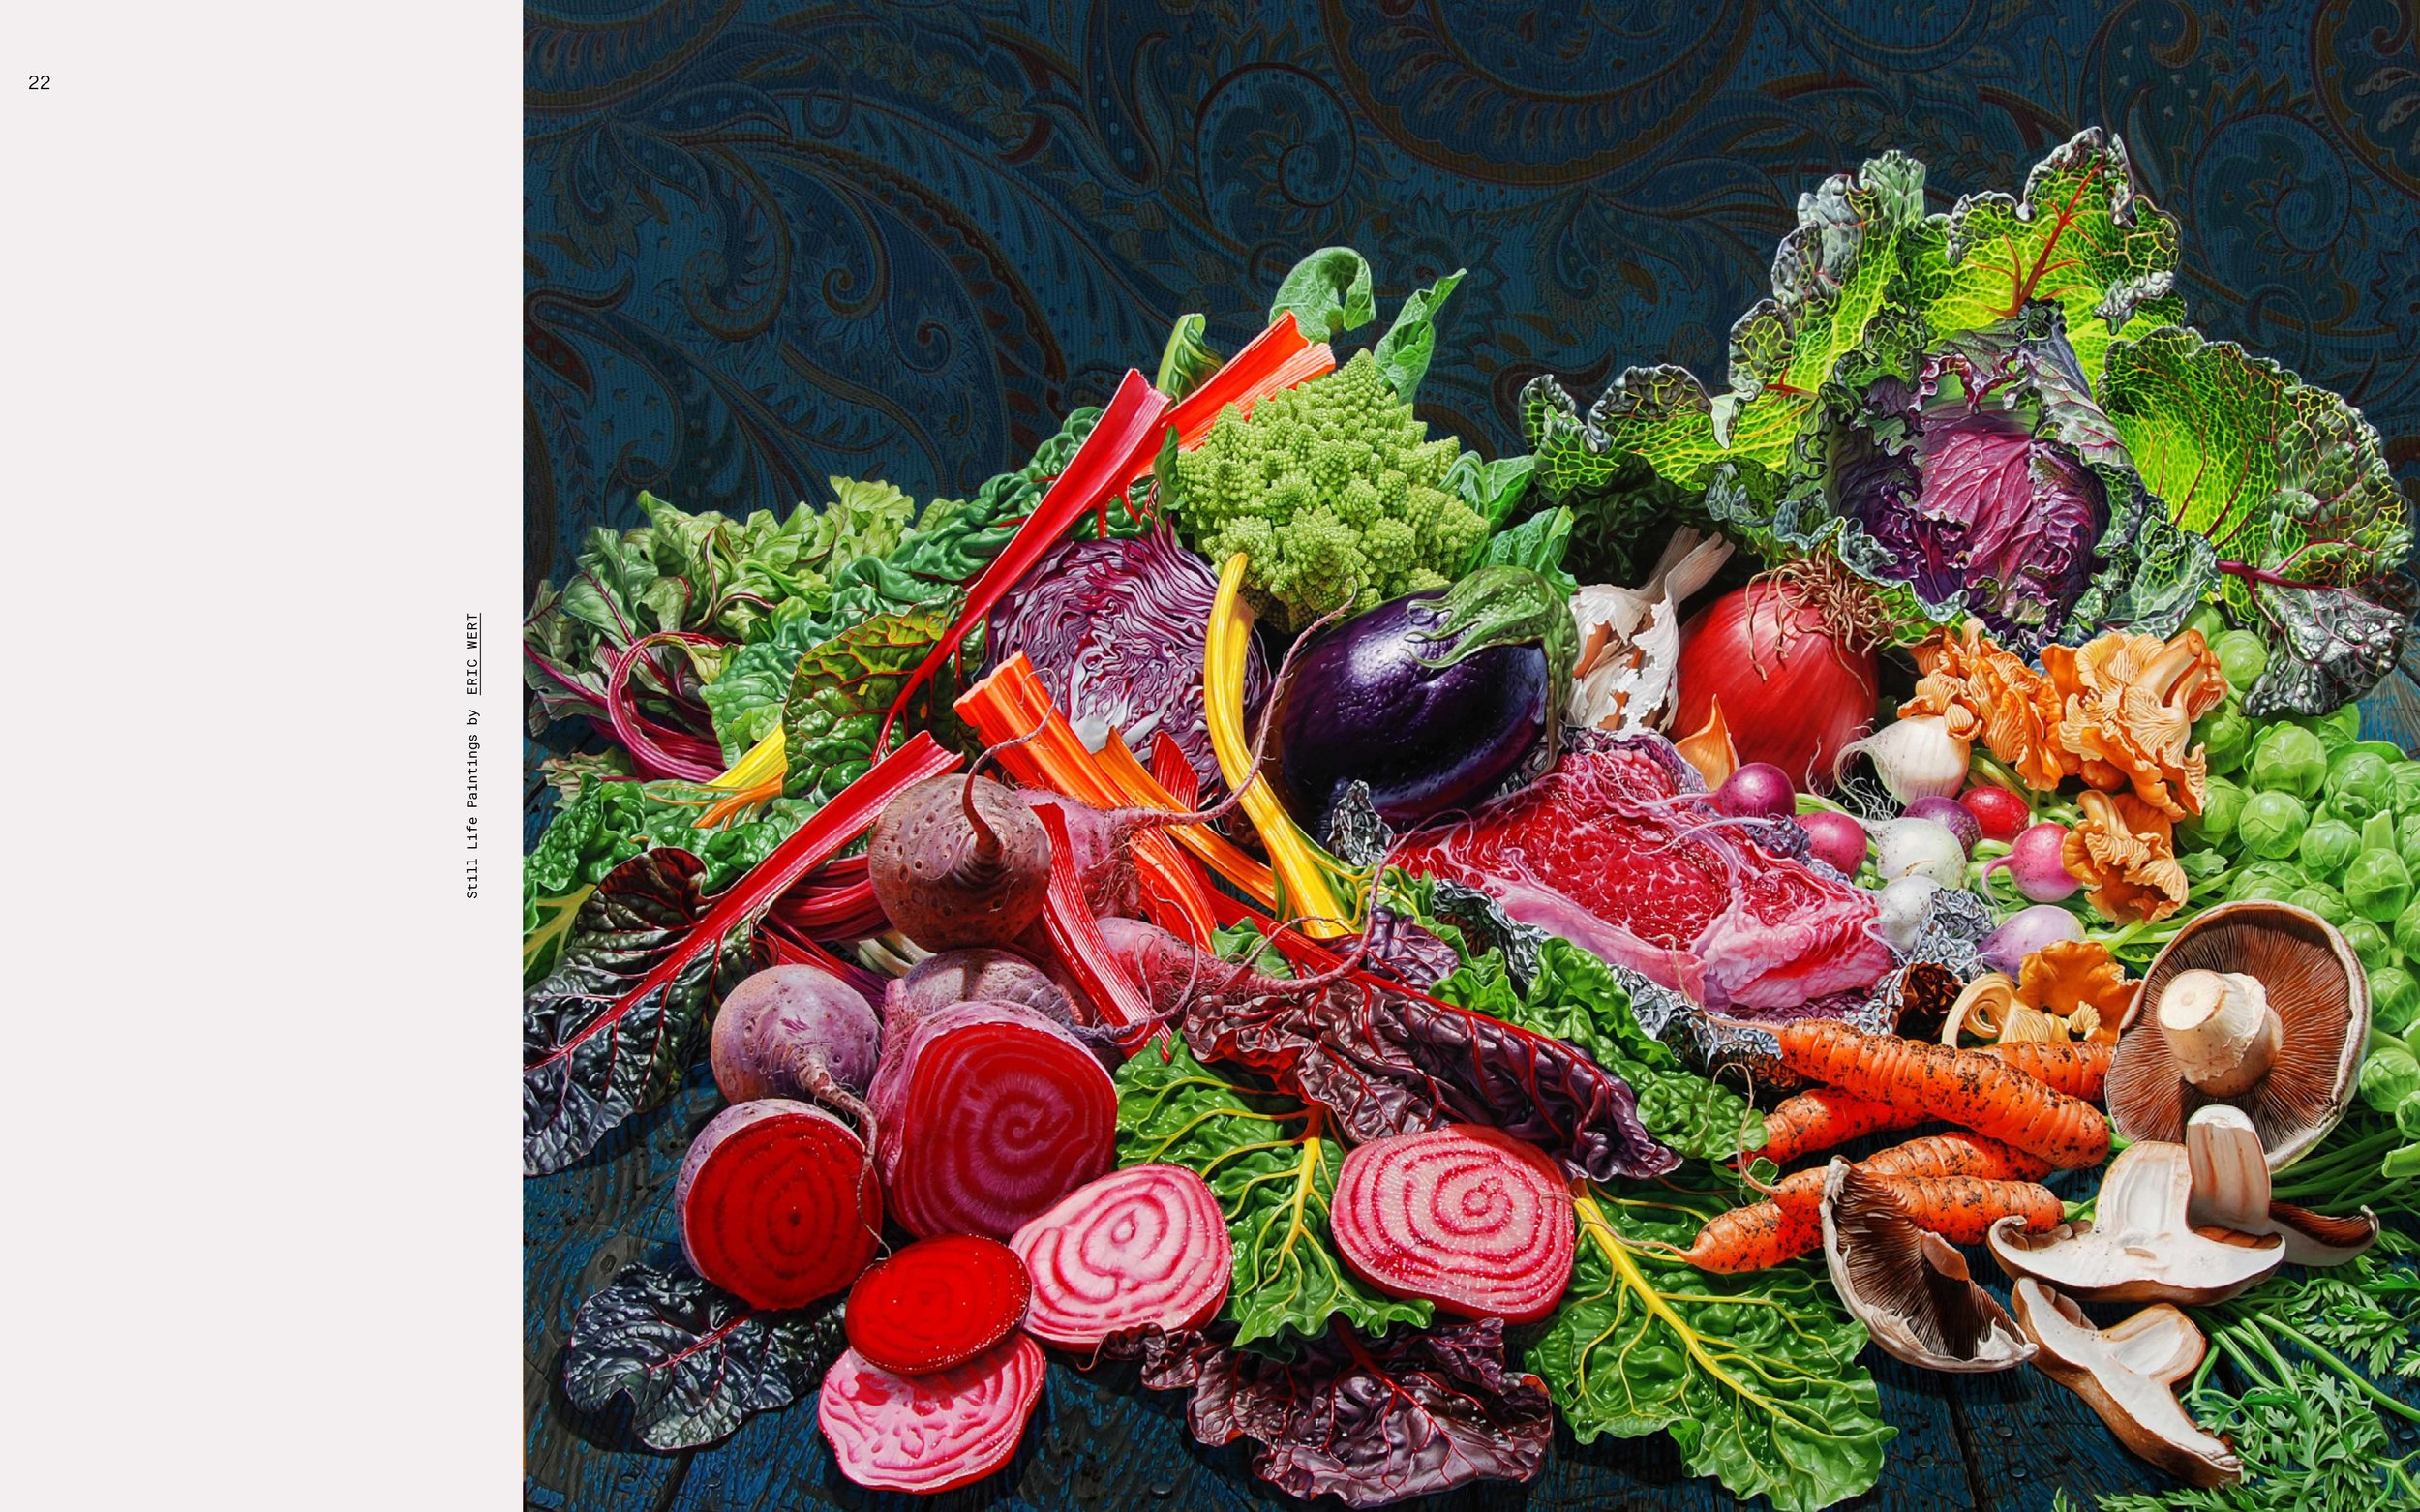 Visual Feast - Contemporary Food Staging and Photography © Gestalten 2017